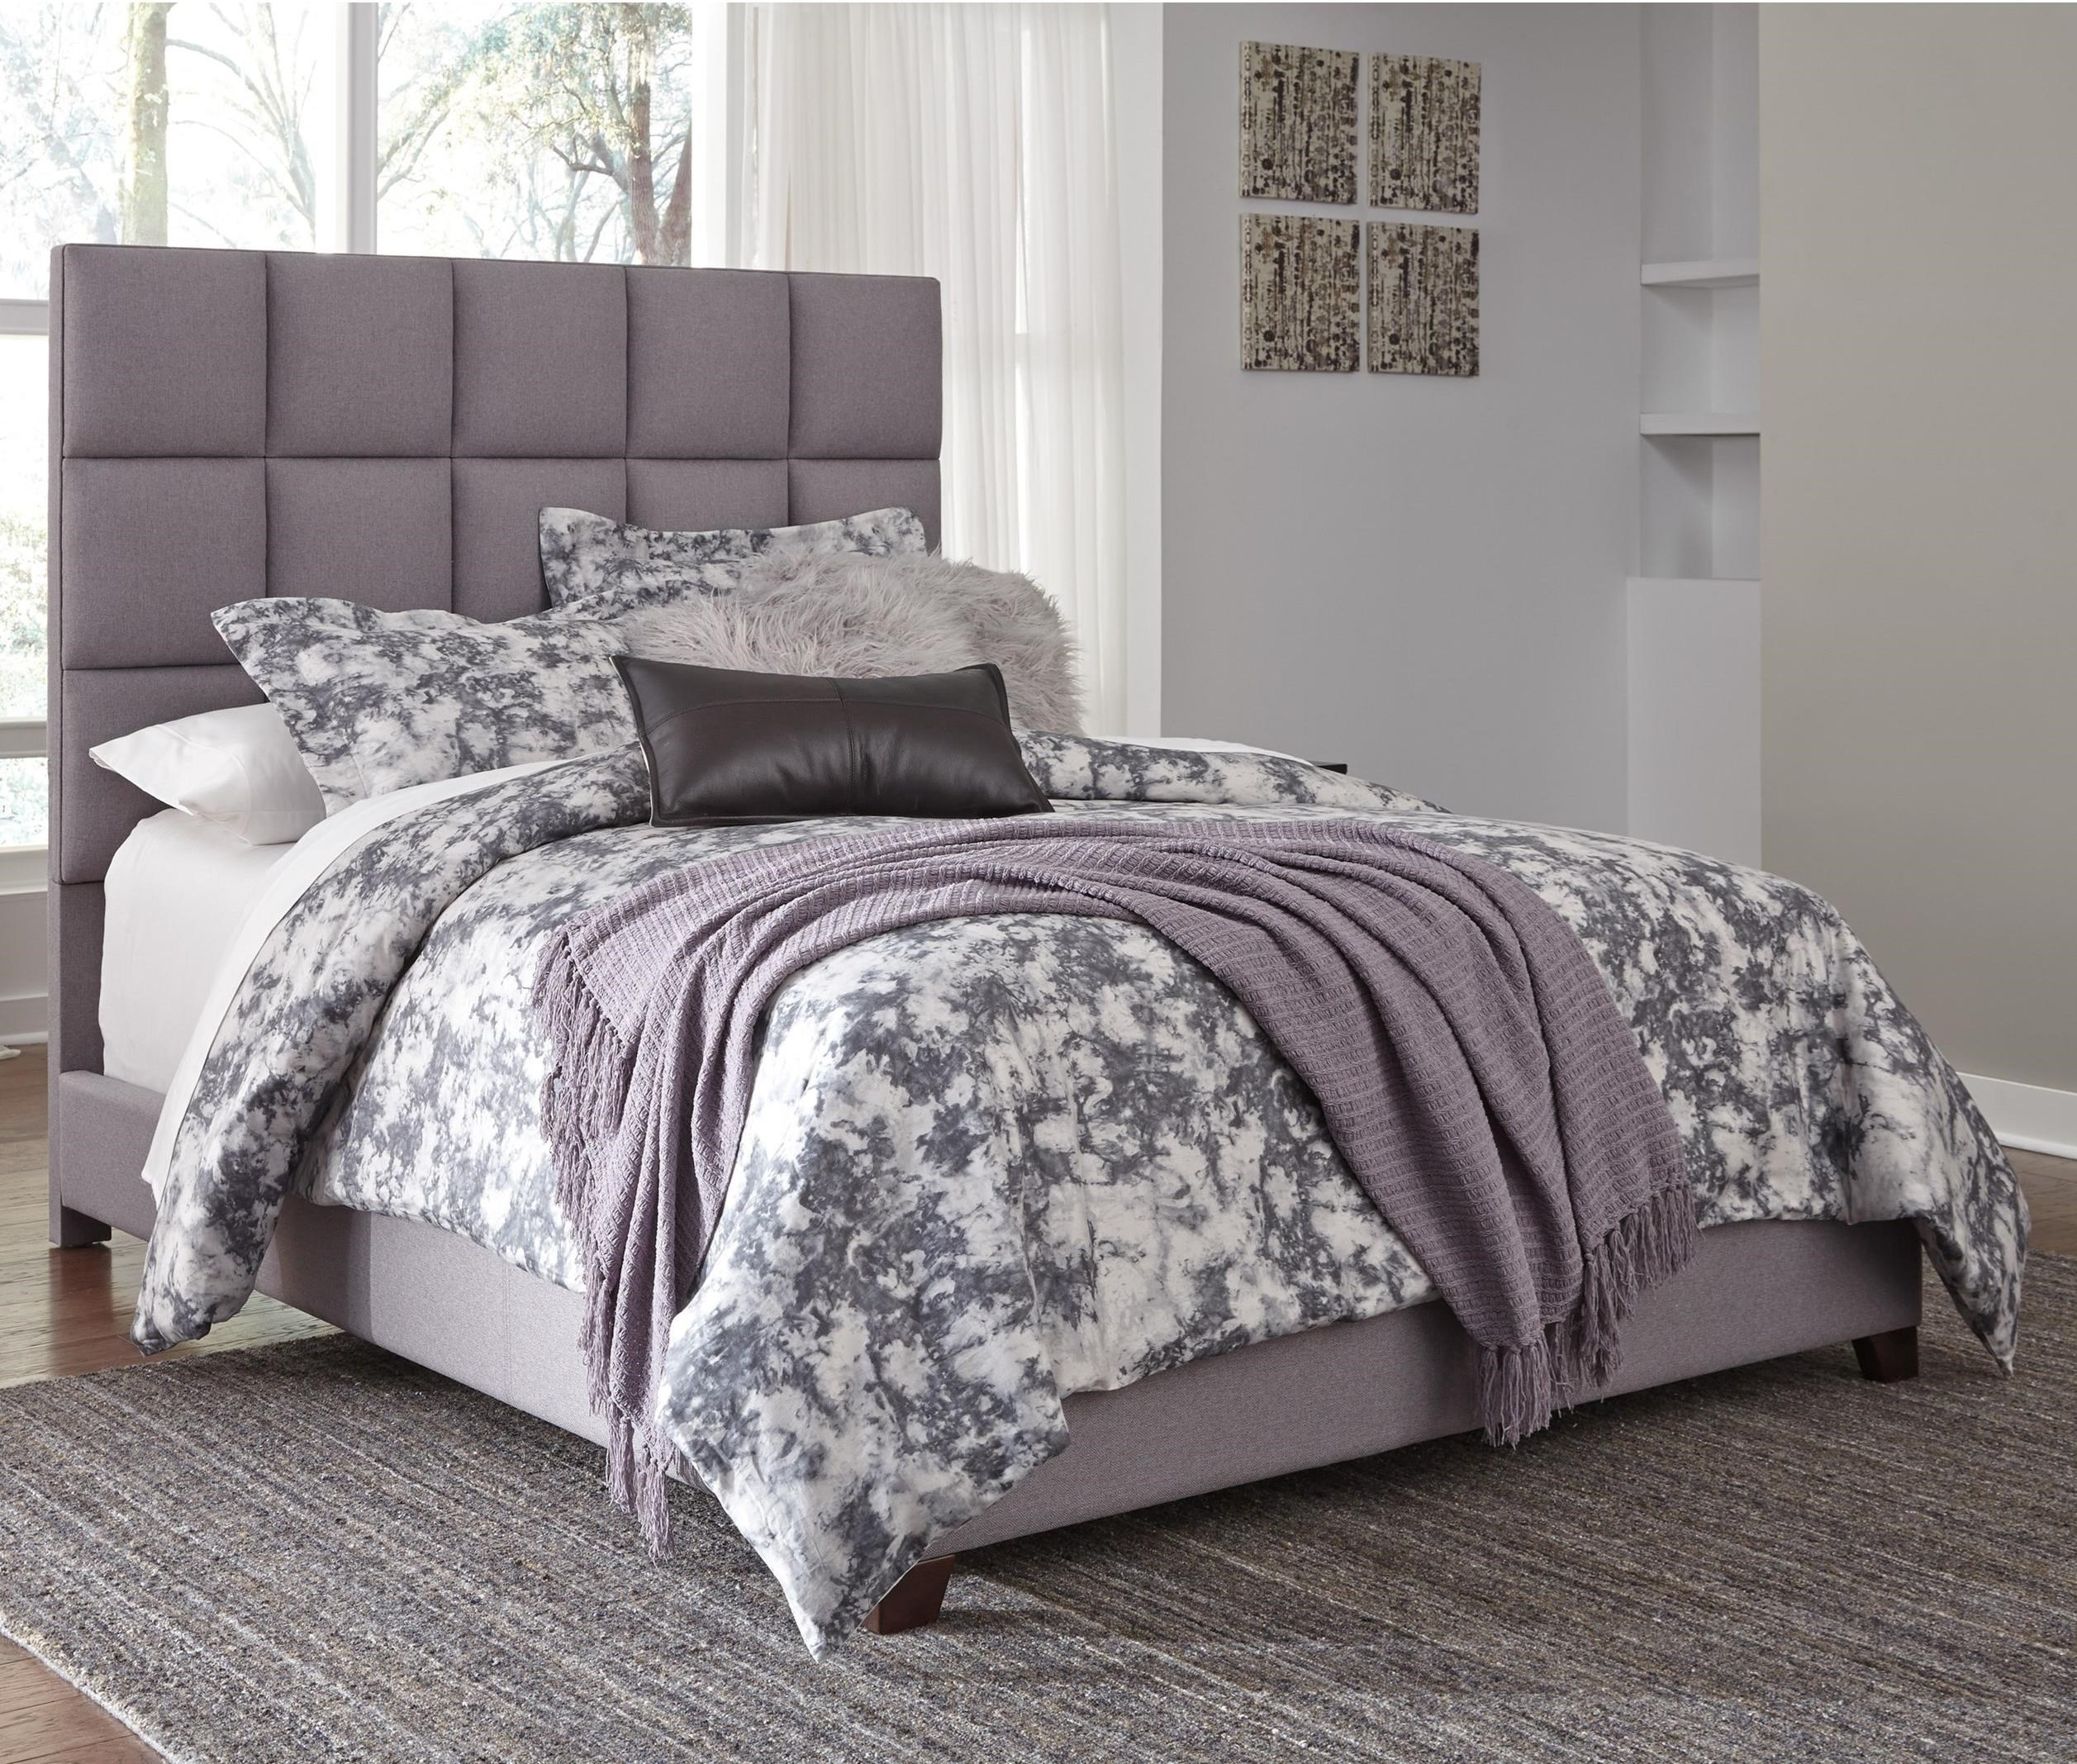 Signature design by ashley dolante queen upholstered bed for Upholstered beds